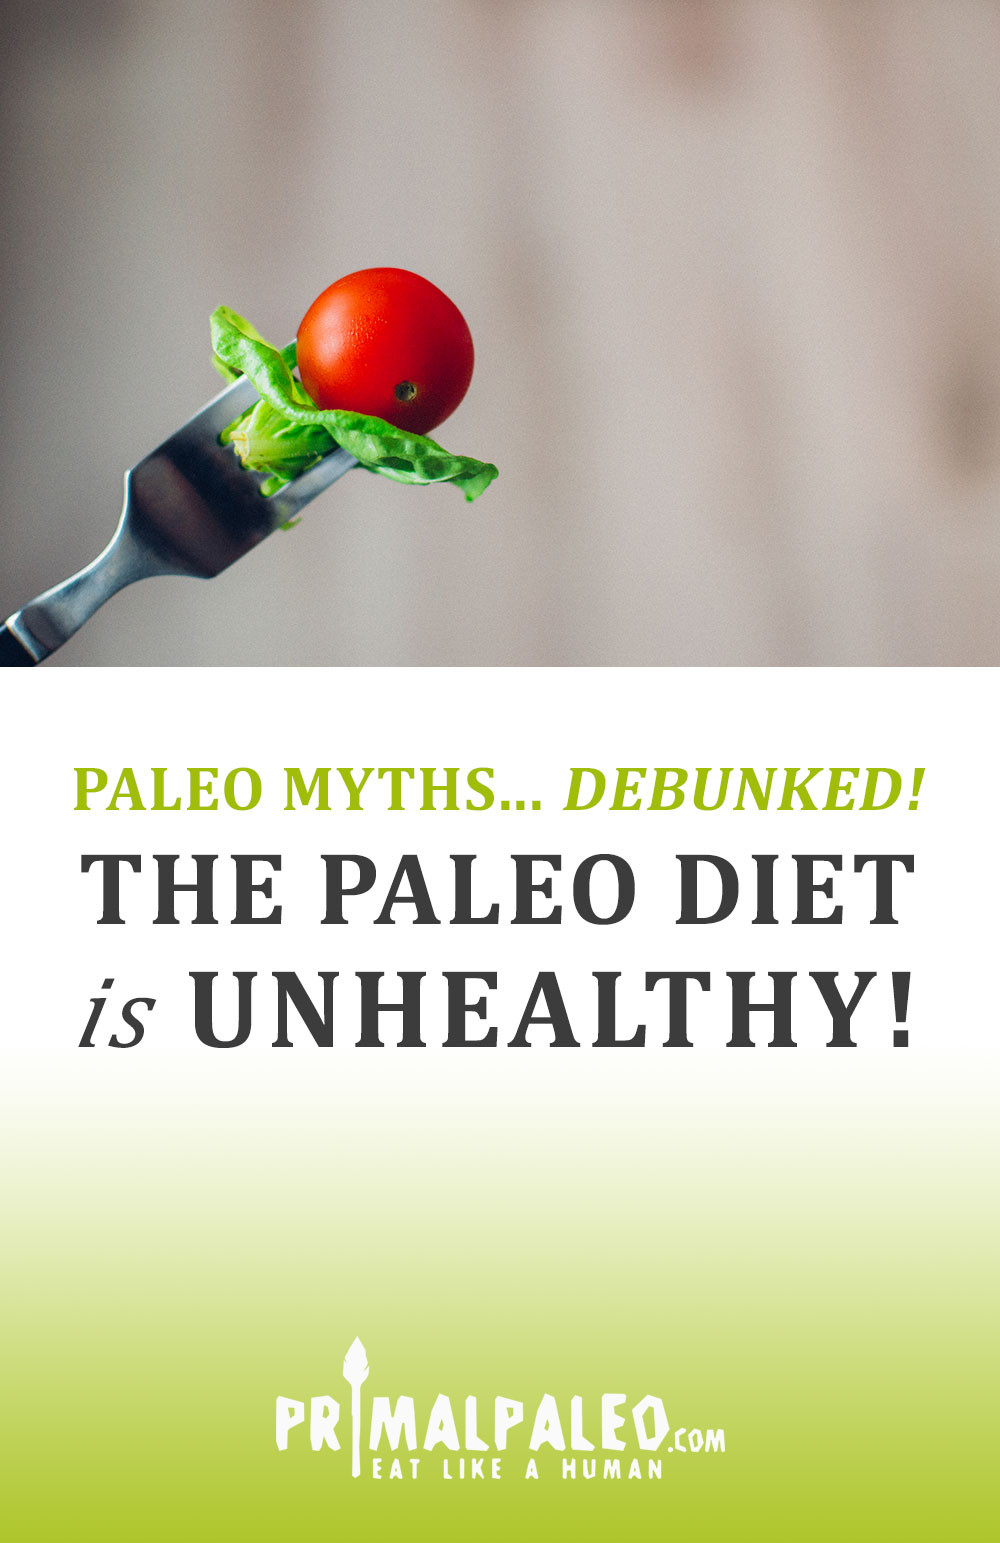 Paleo Diet Unhealthy  [Paleo Myths… Debunked ] The Paleo Diet is Unhealthy